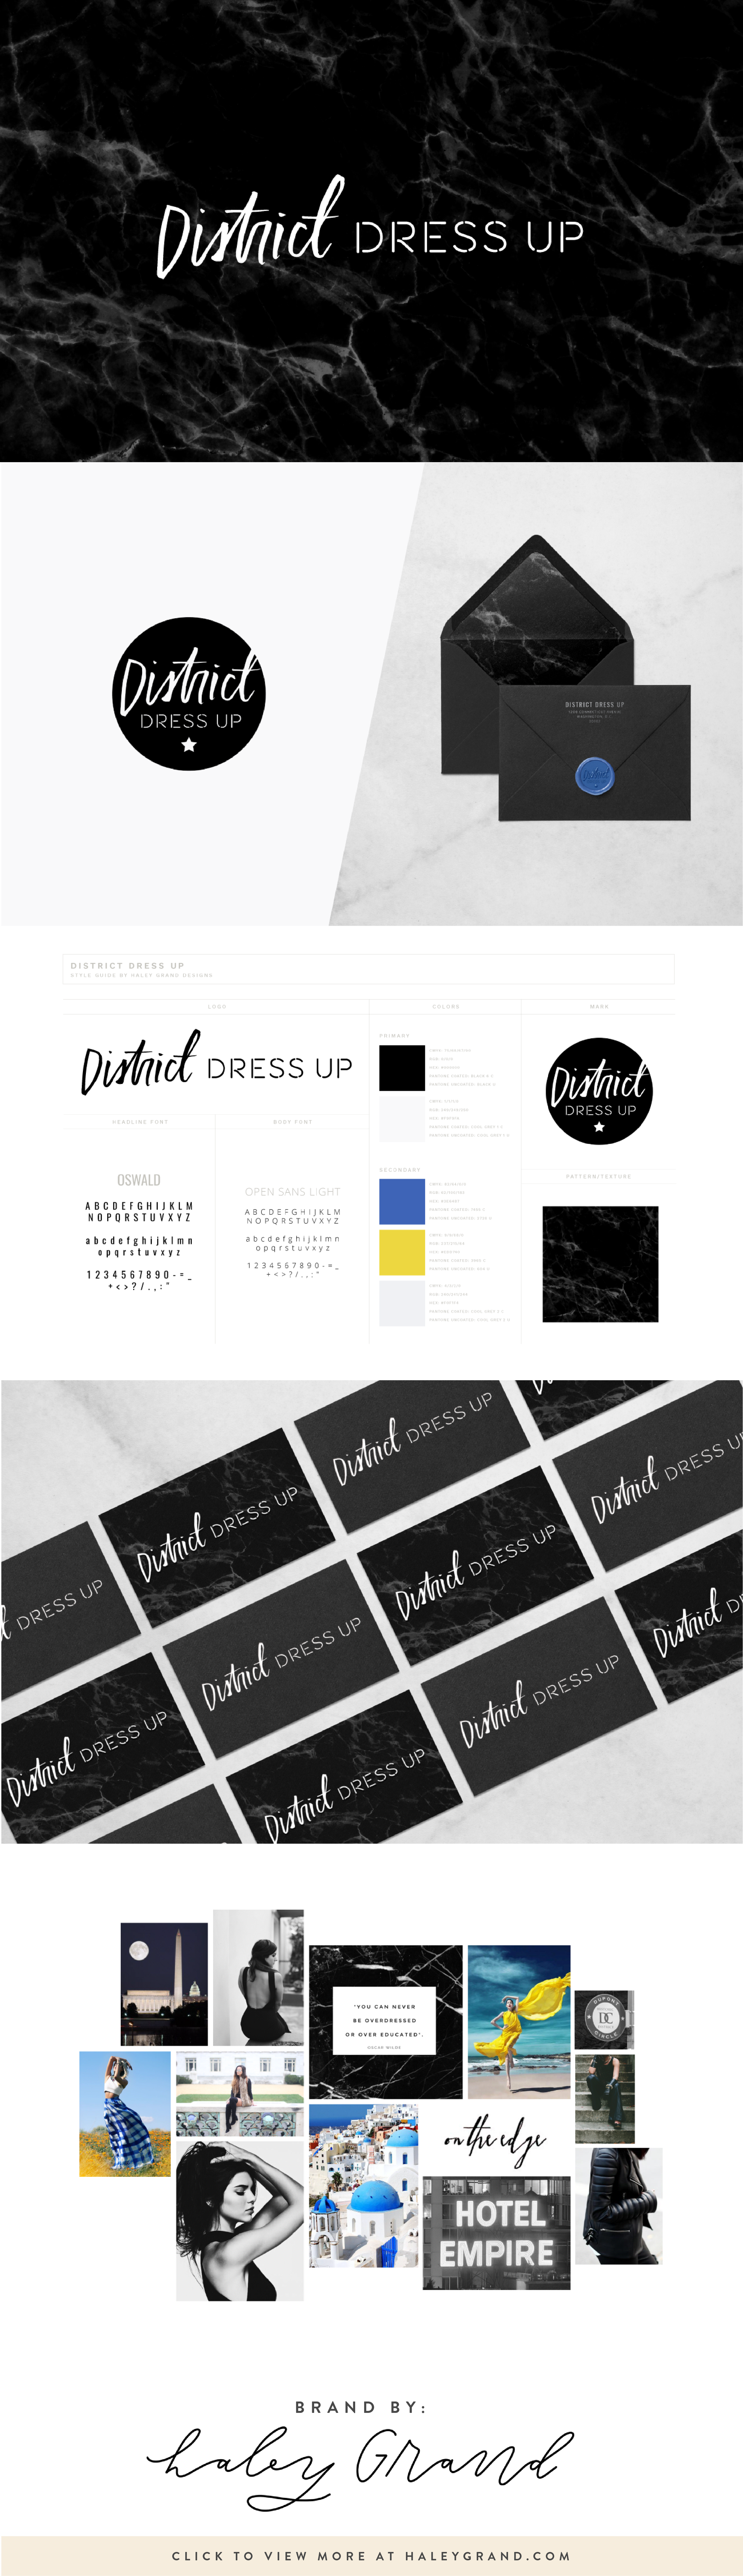 This edgy, sophisticated logo was designed for a personal style blog. The hand-lettered logo makes this modern brand stand out. Are you a creative entrepreneur? Up-level your brand with a logo designed using hand lettering and illustration by Haley Grand!